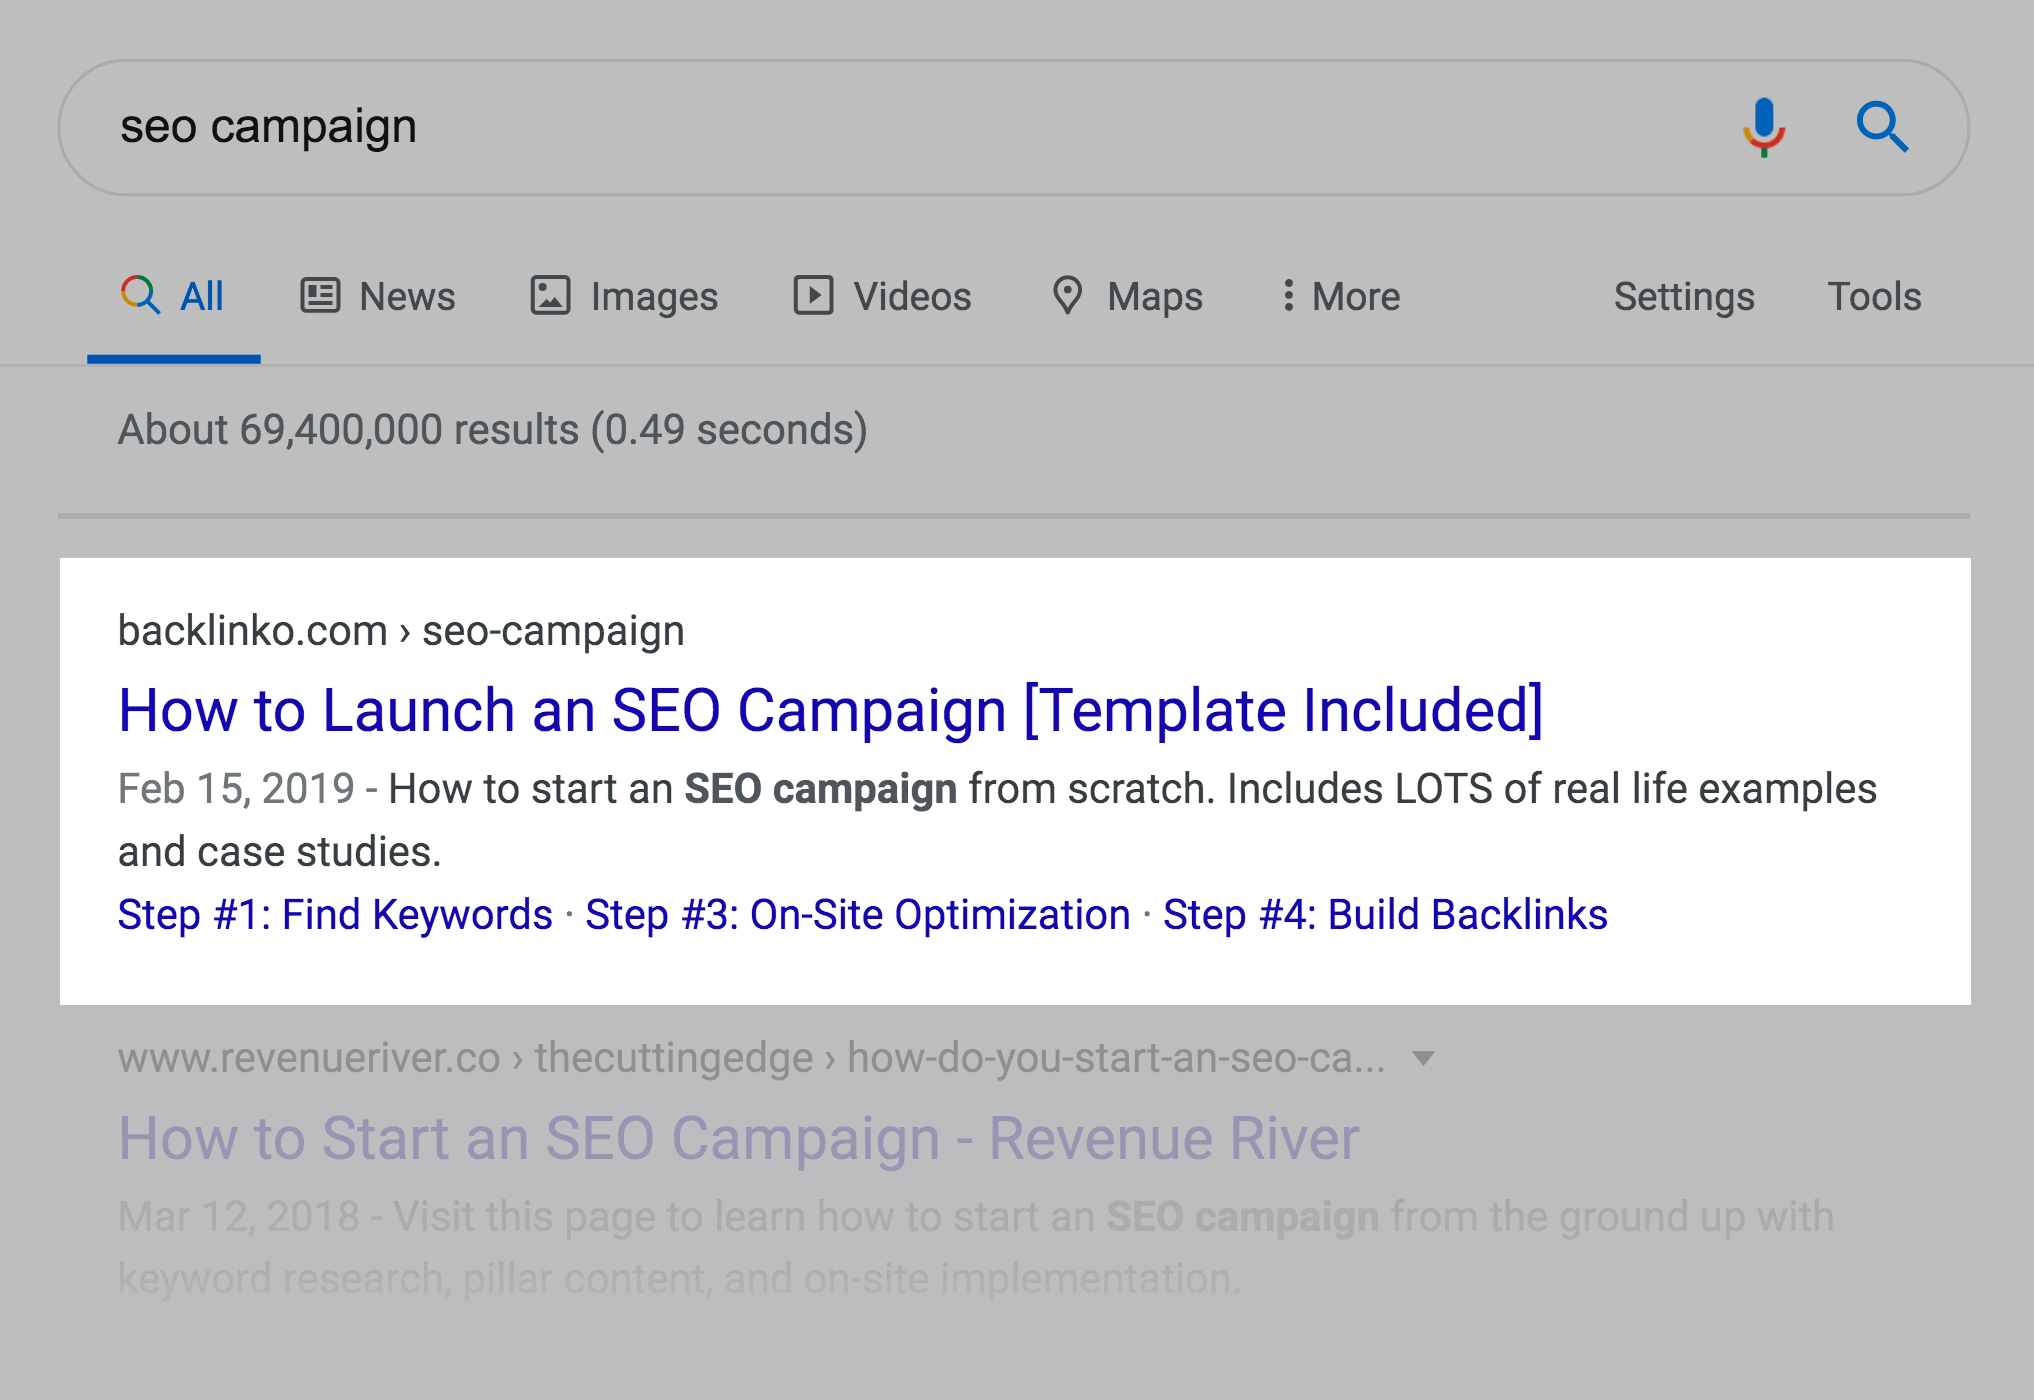 How to Launch an SEO Campaign post in SERPs